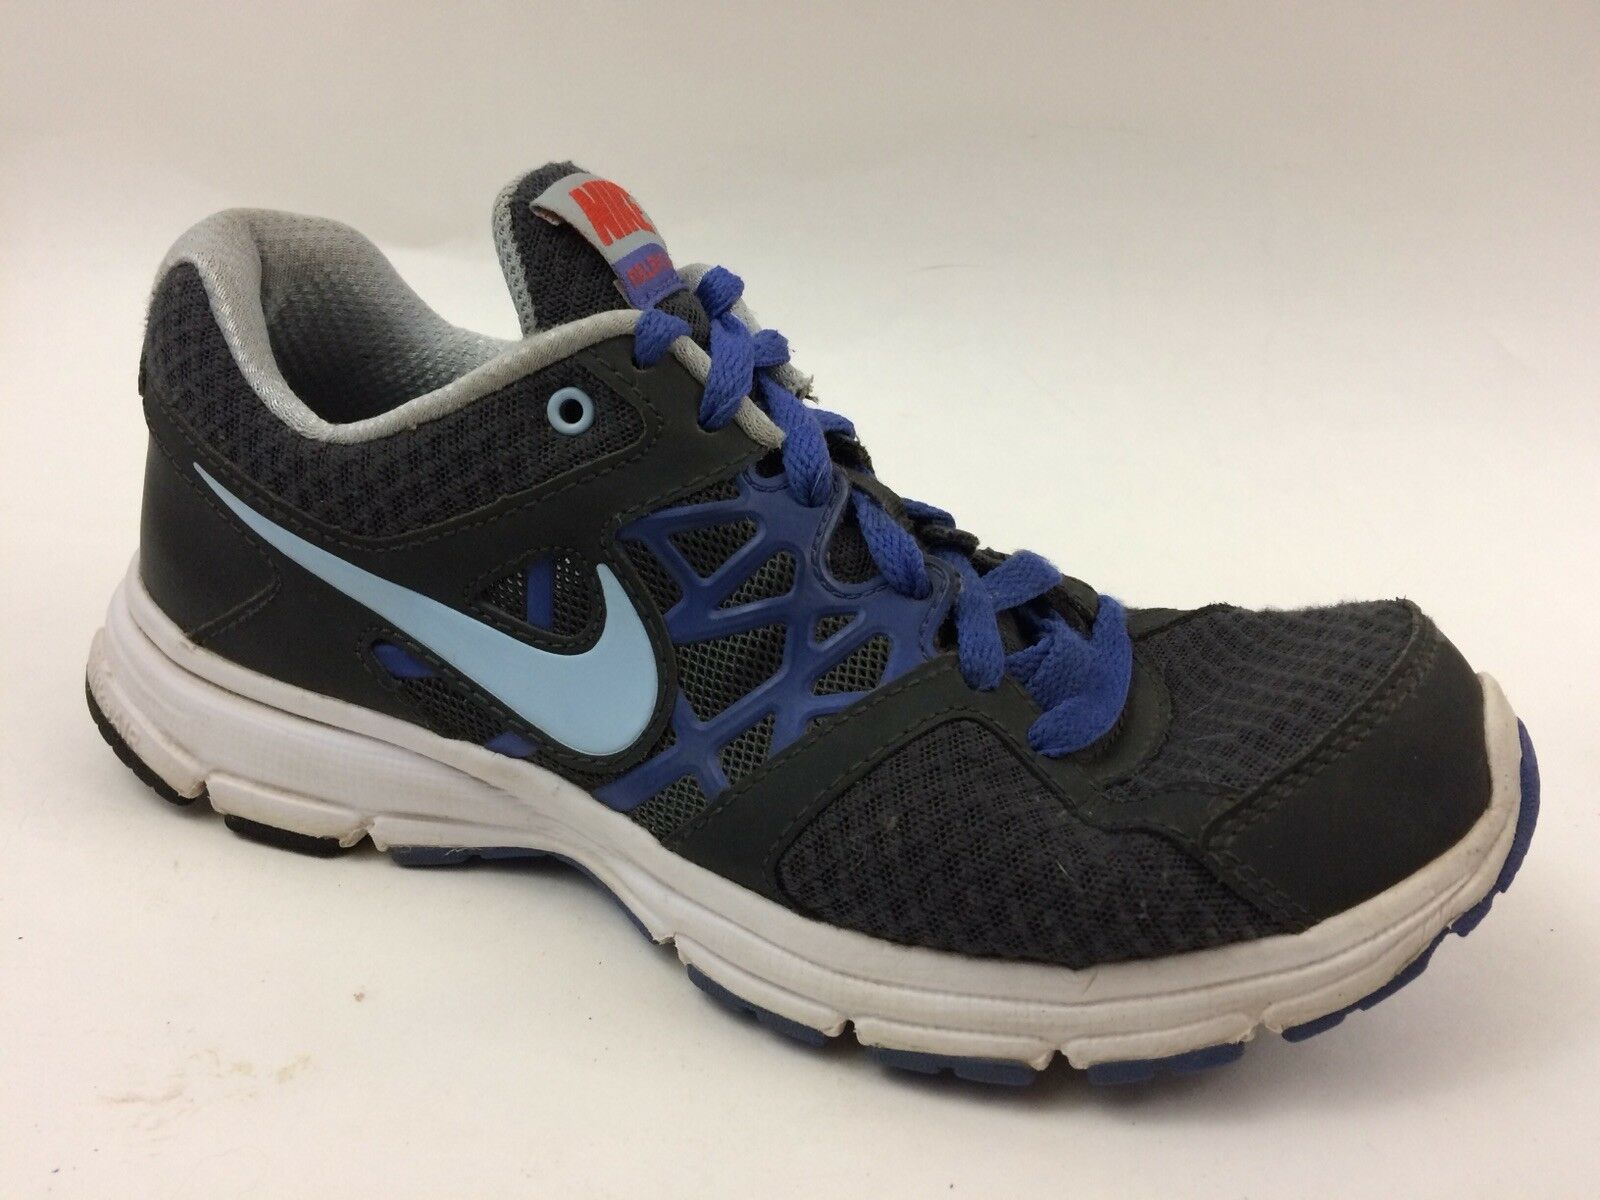 NIKE Womens 8.5 Med AIR RELENTLESS 2 Running Shoes 512083 013 Blue Gray Sneakers